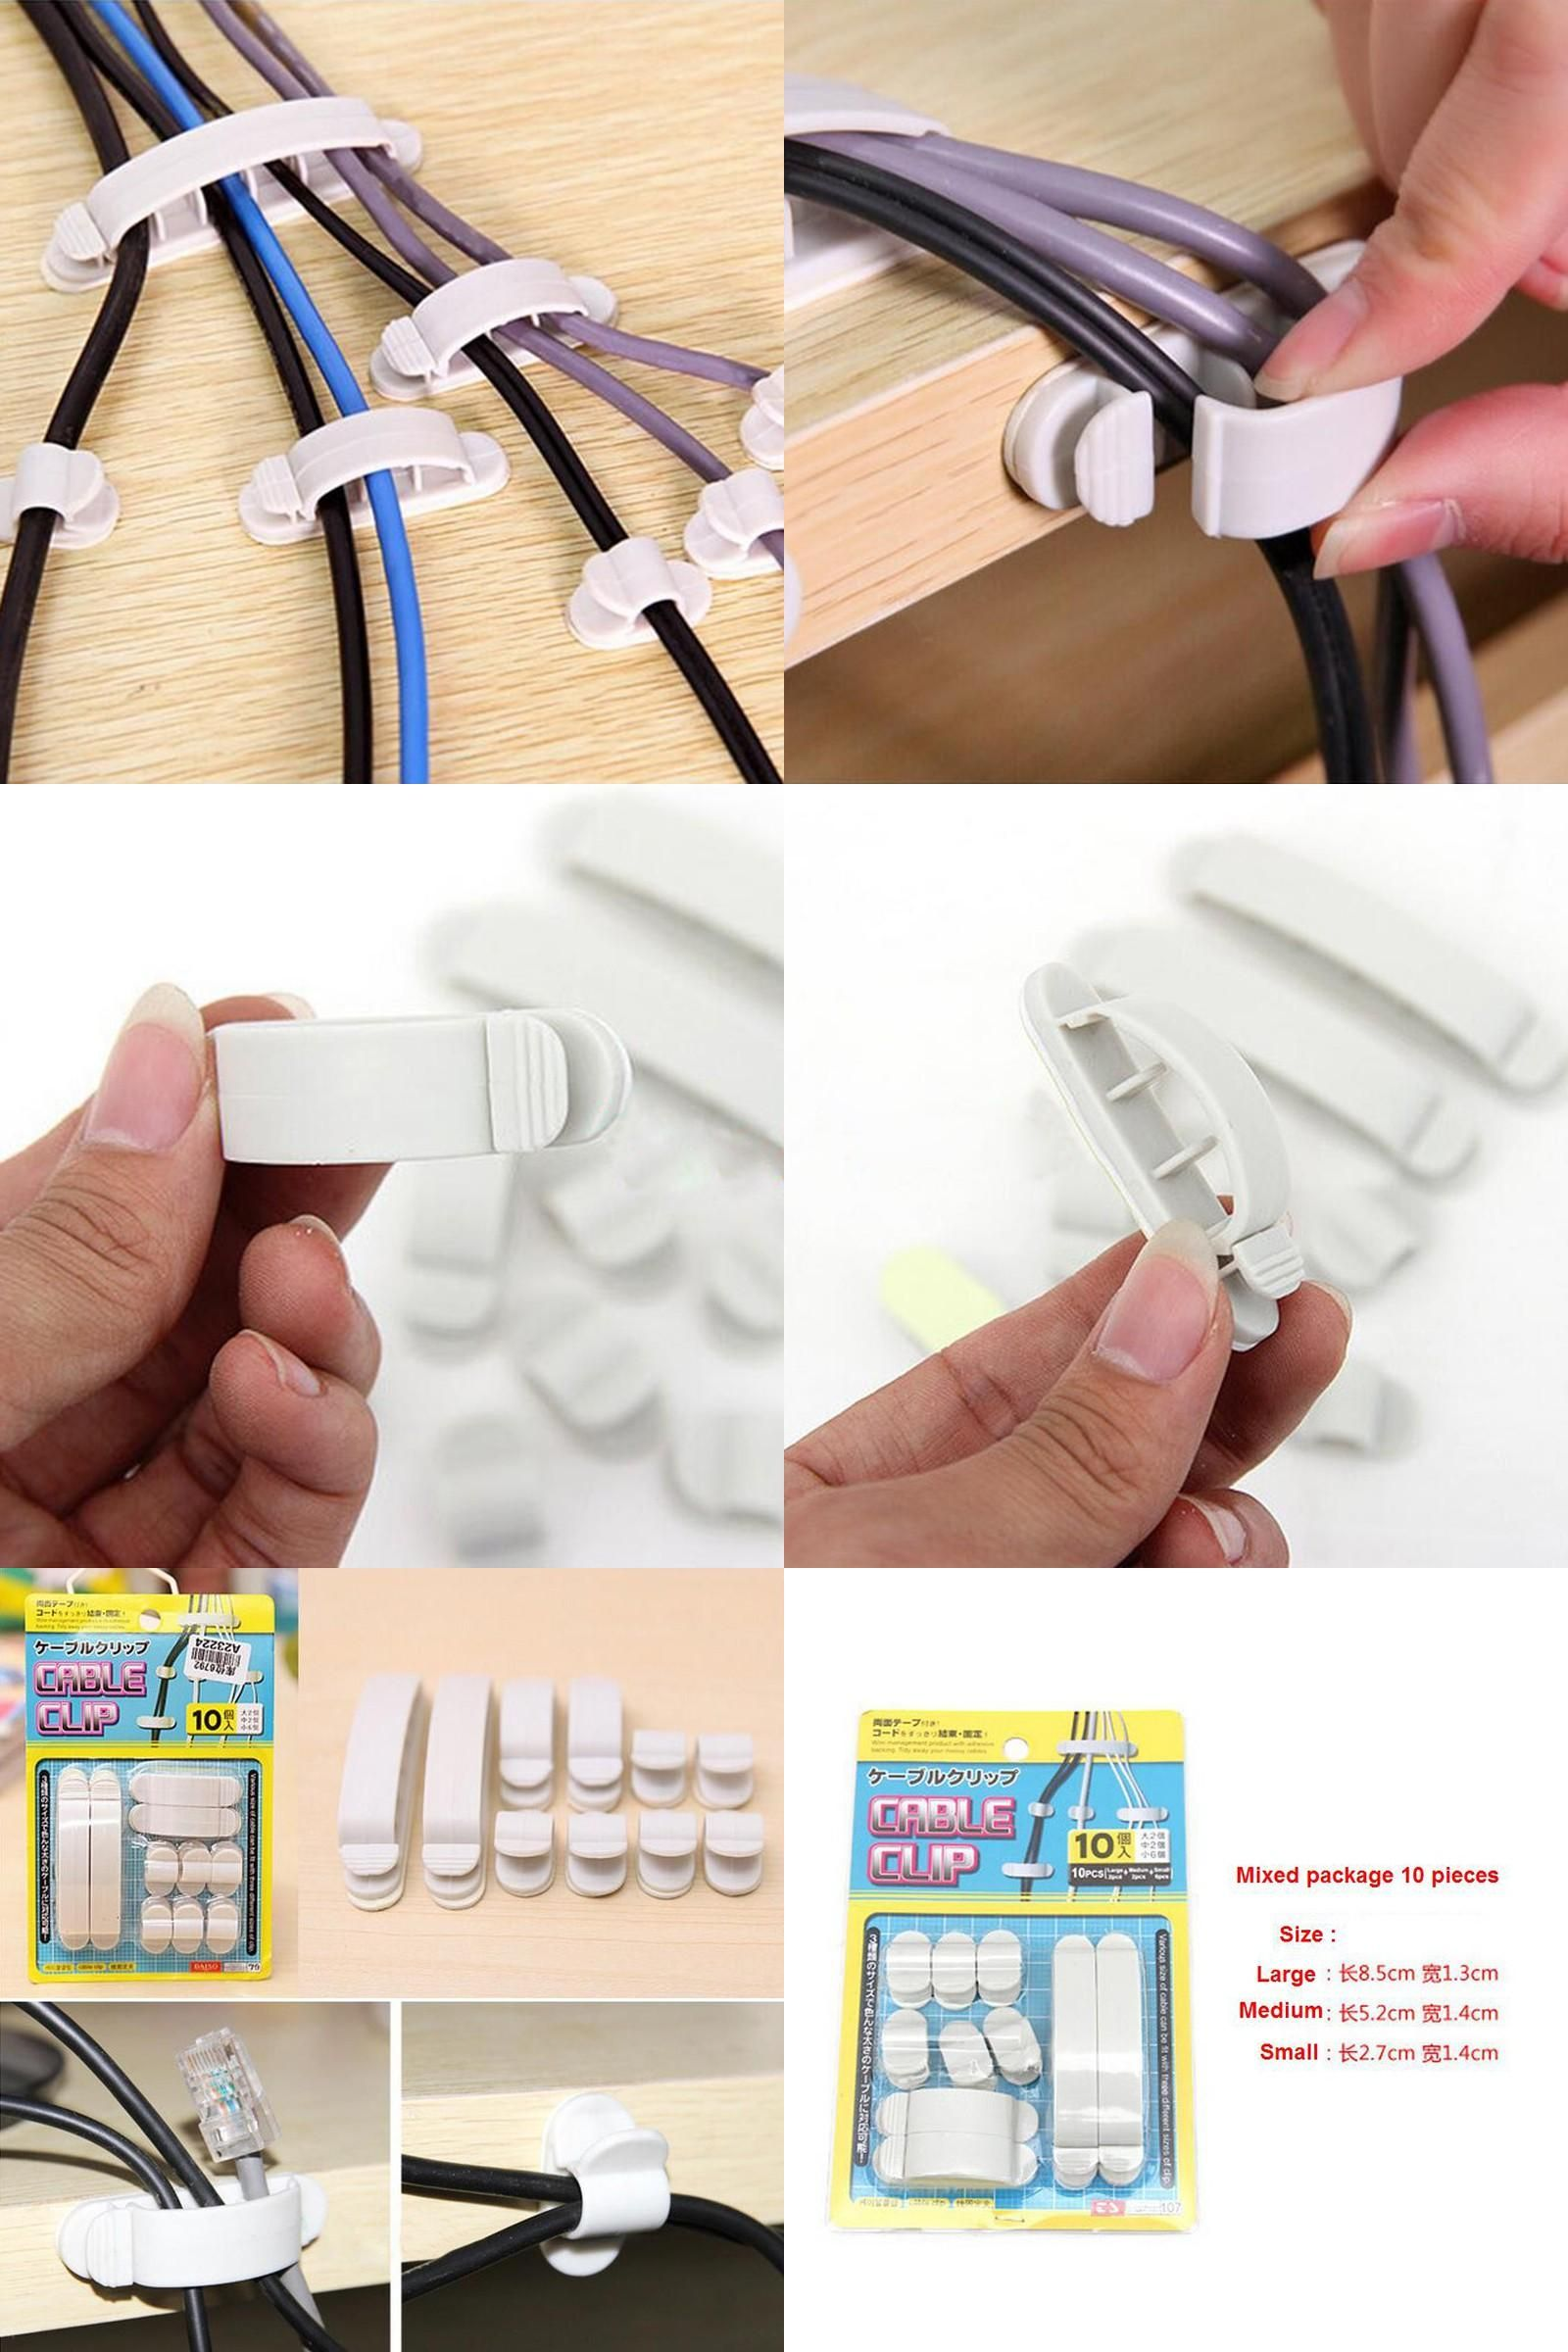 Visit to Buy] 10pcs Adhesive Household cable Holders storage Racks ...